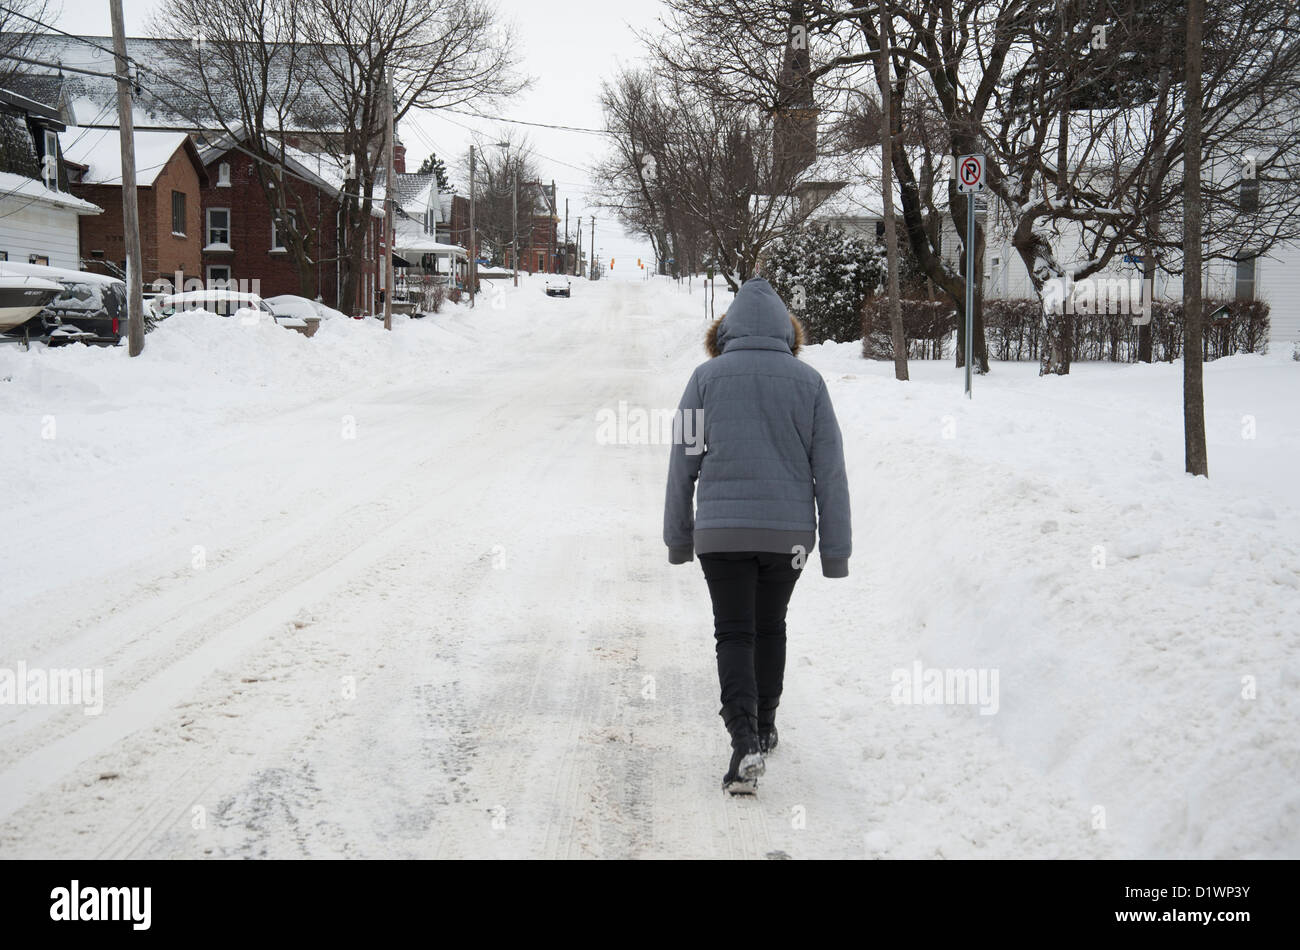 Woman walking down a snowy street in small town Canada in winter - Stock Image